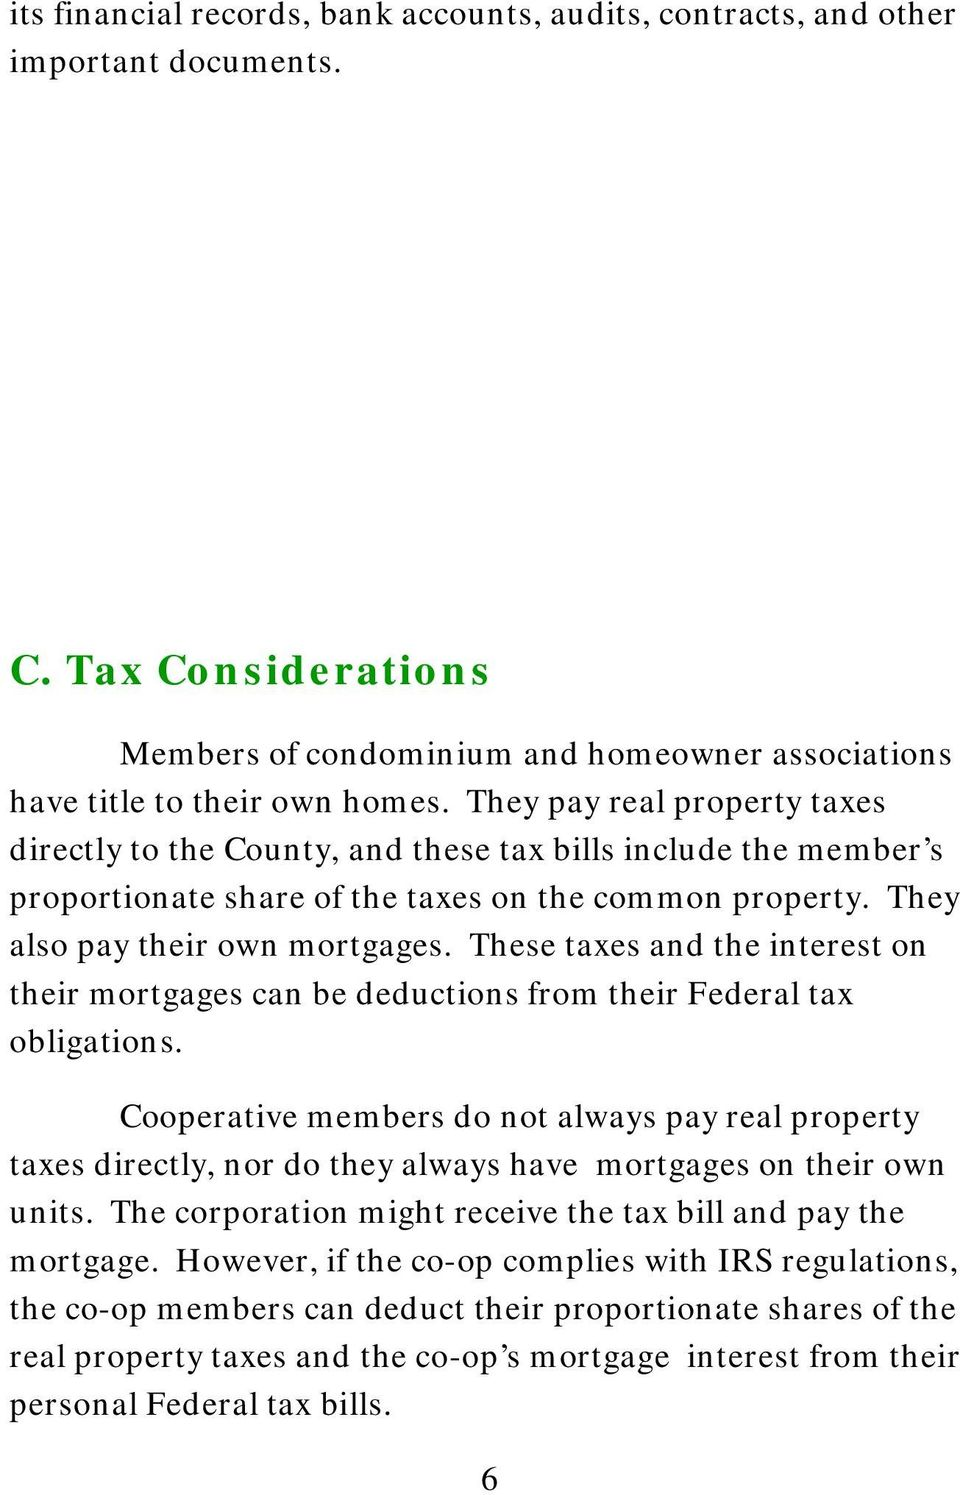 These taxes and the interest on their mortgages can be deductions from their Federal tax obligations.